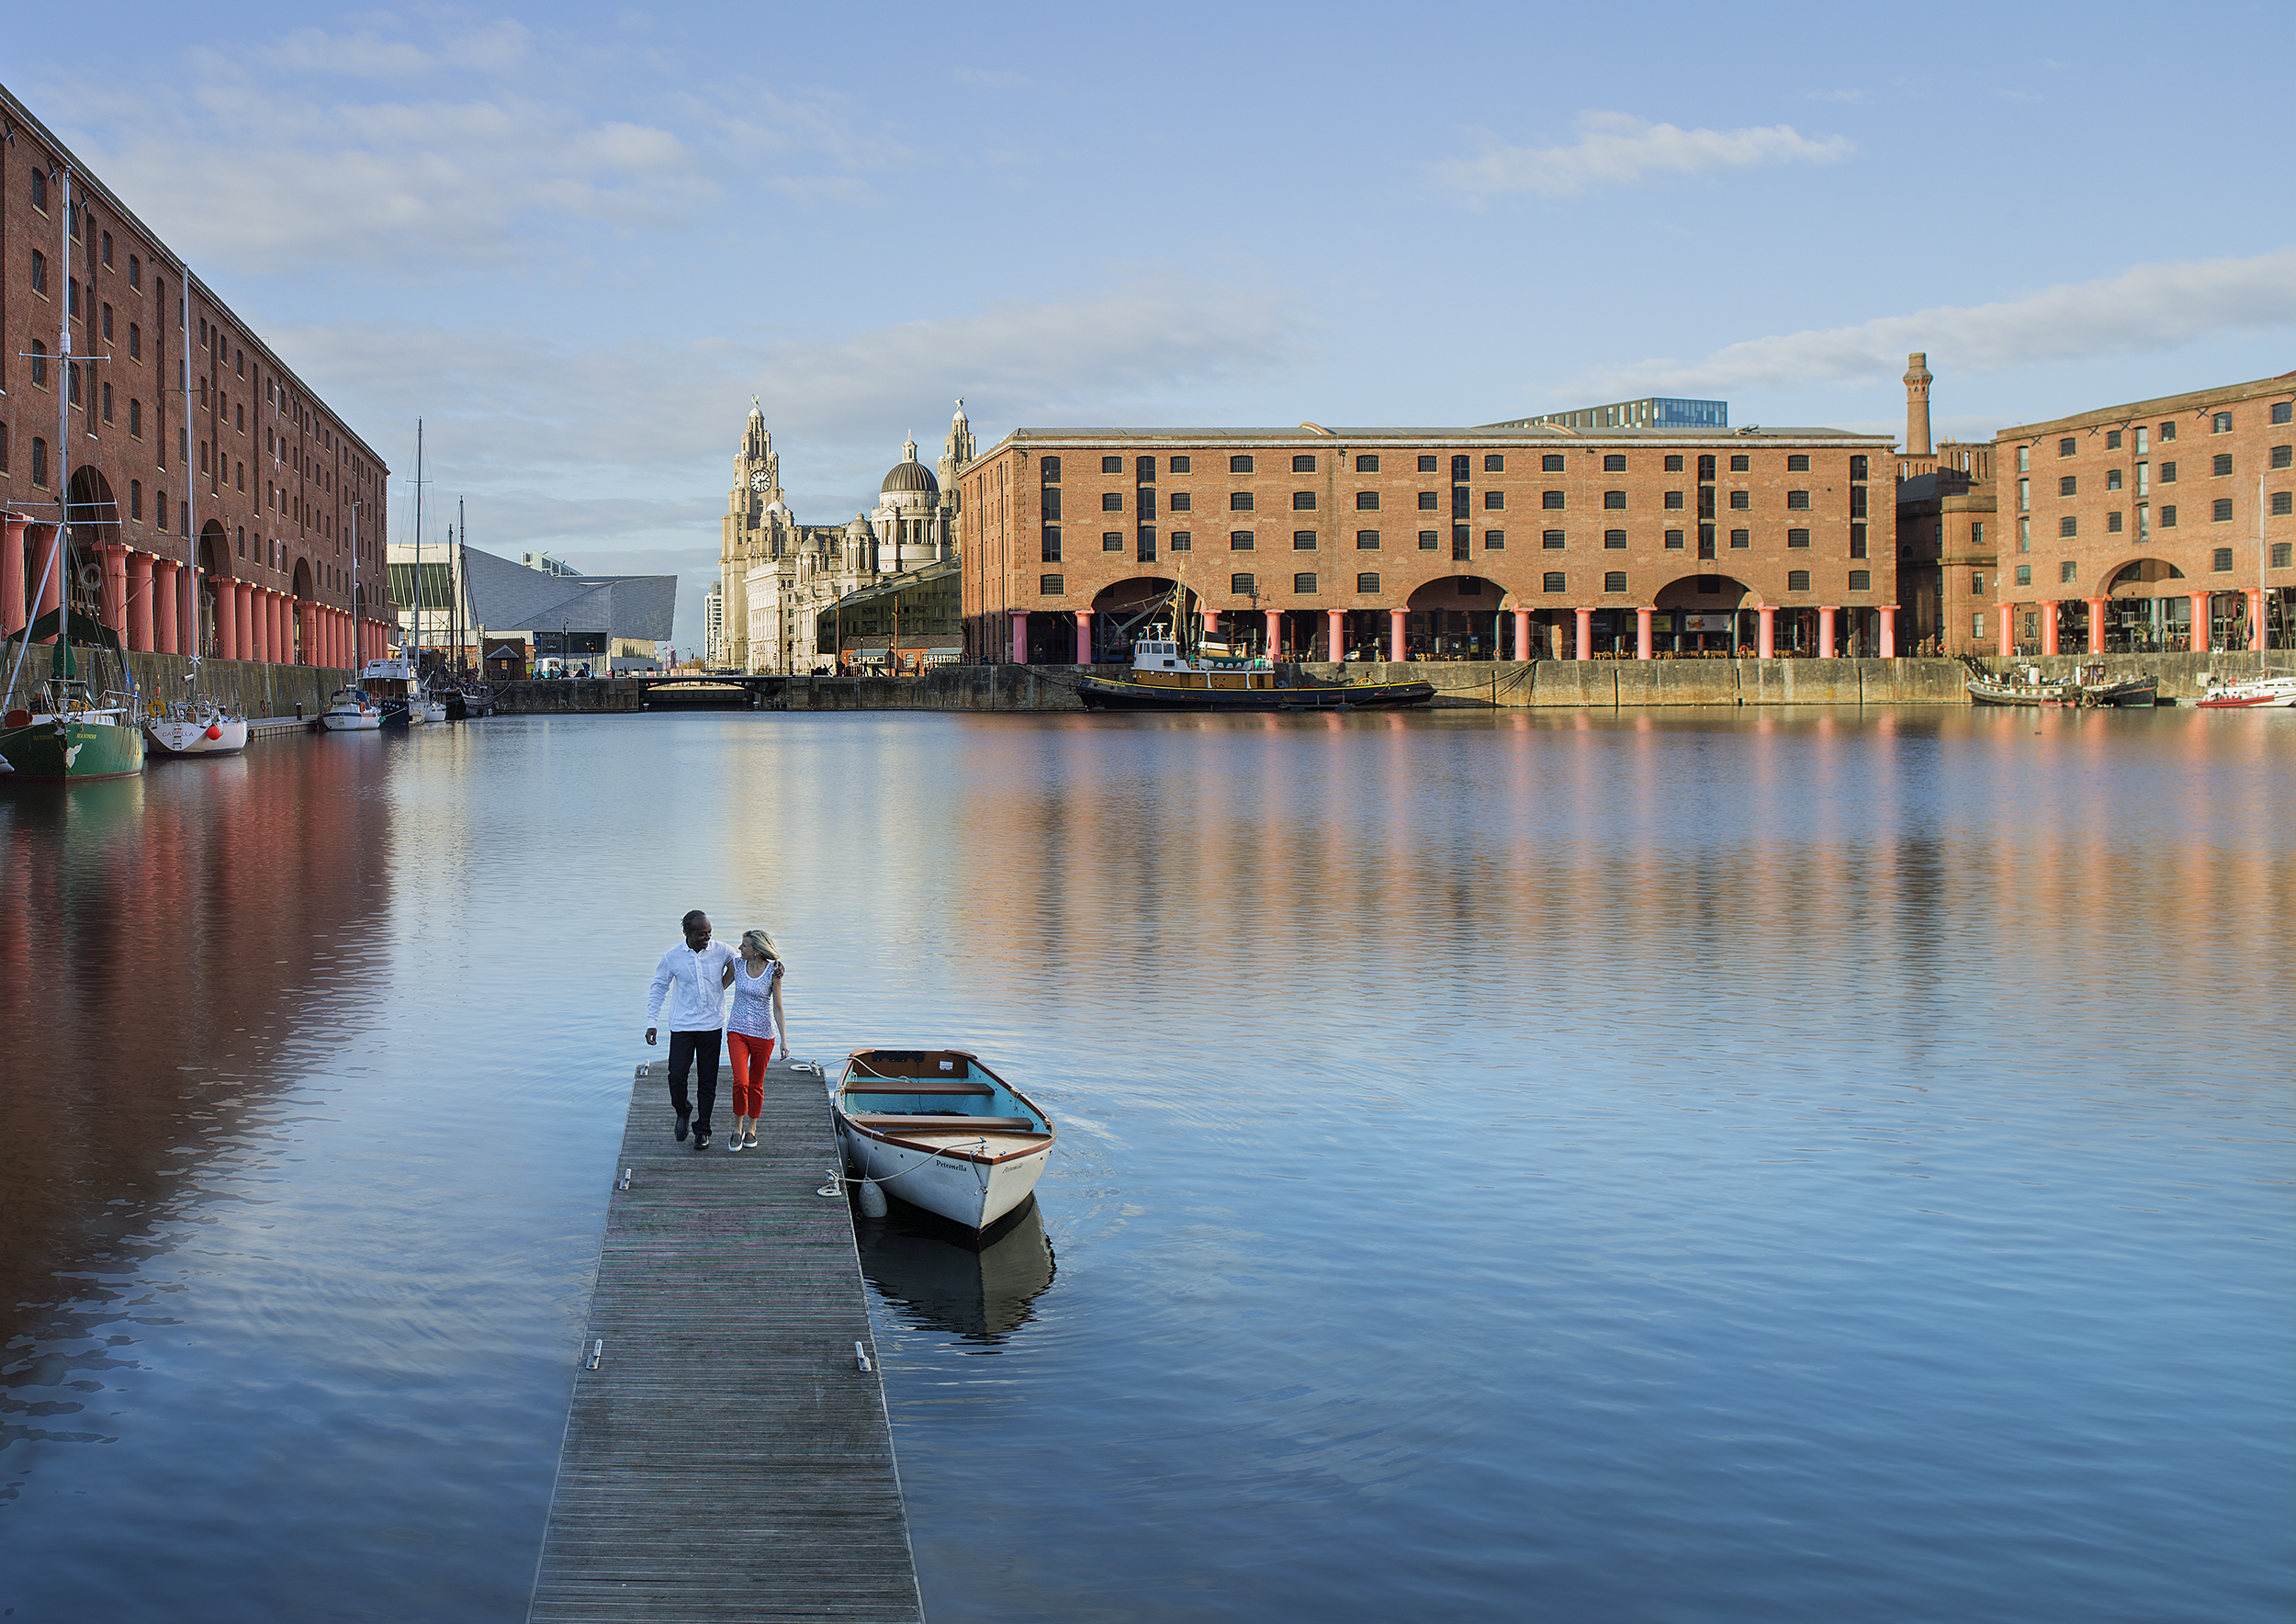 easton_161107_AlbertDock_pontoon_day_dps.jpg